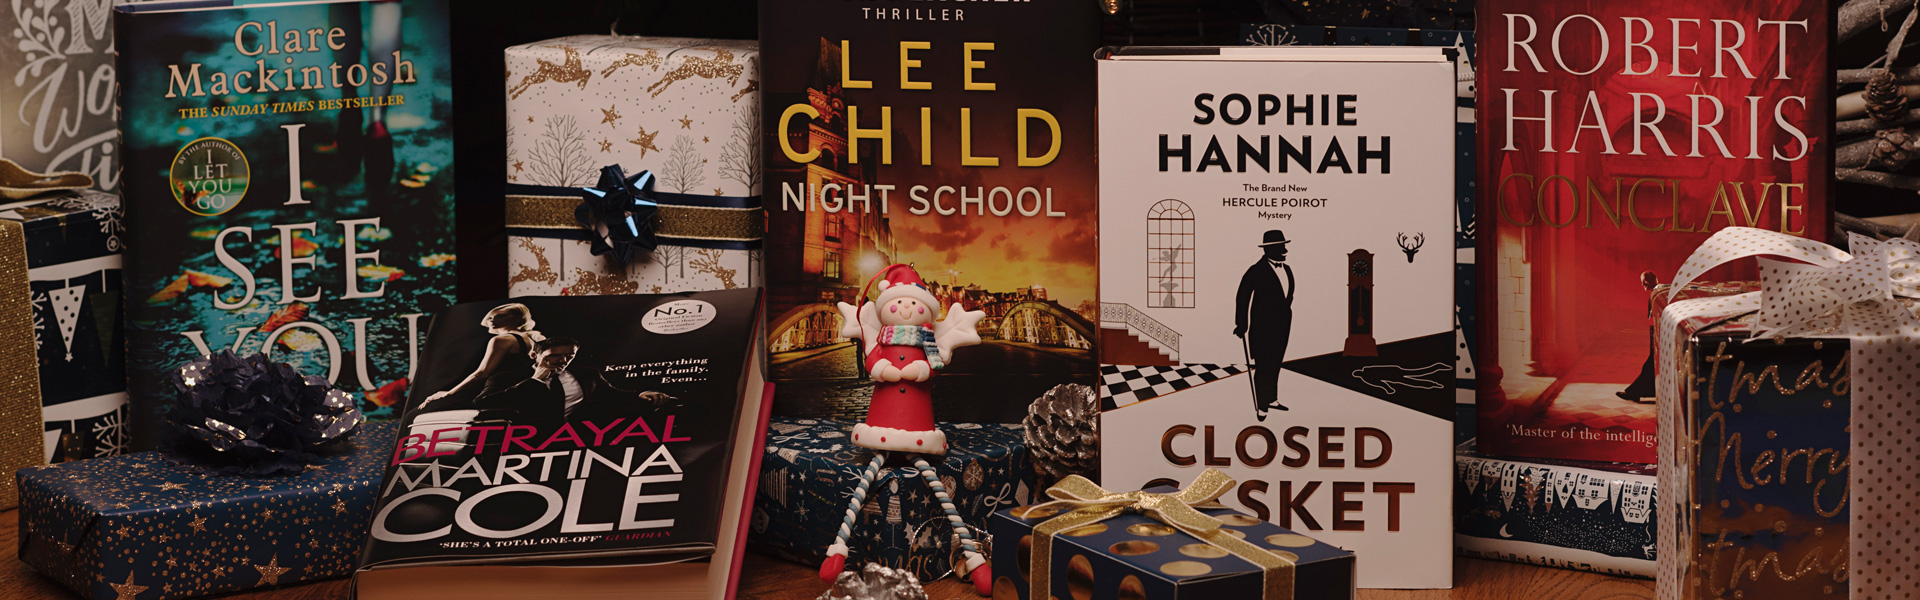 Our Christmas Top Picks: Crime and Thriller Books